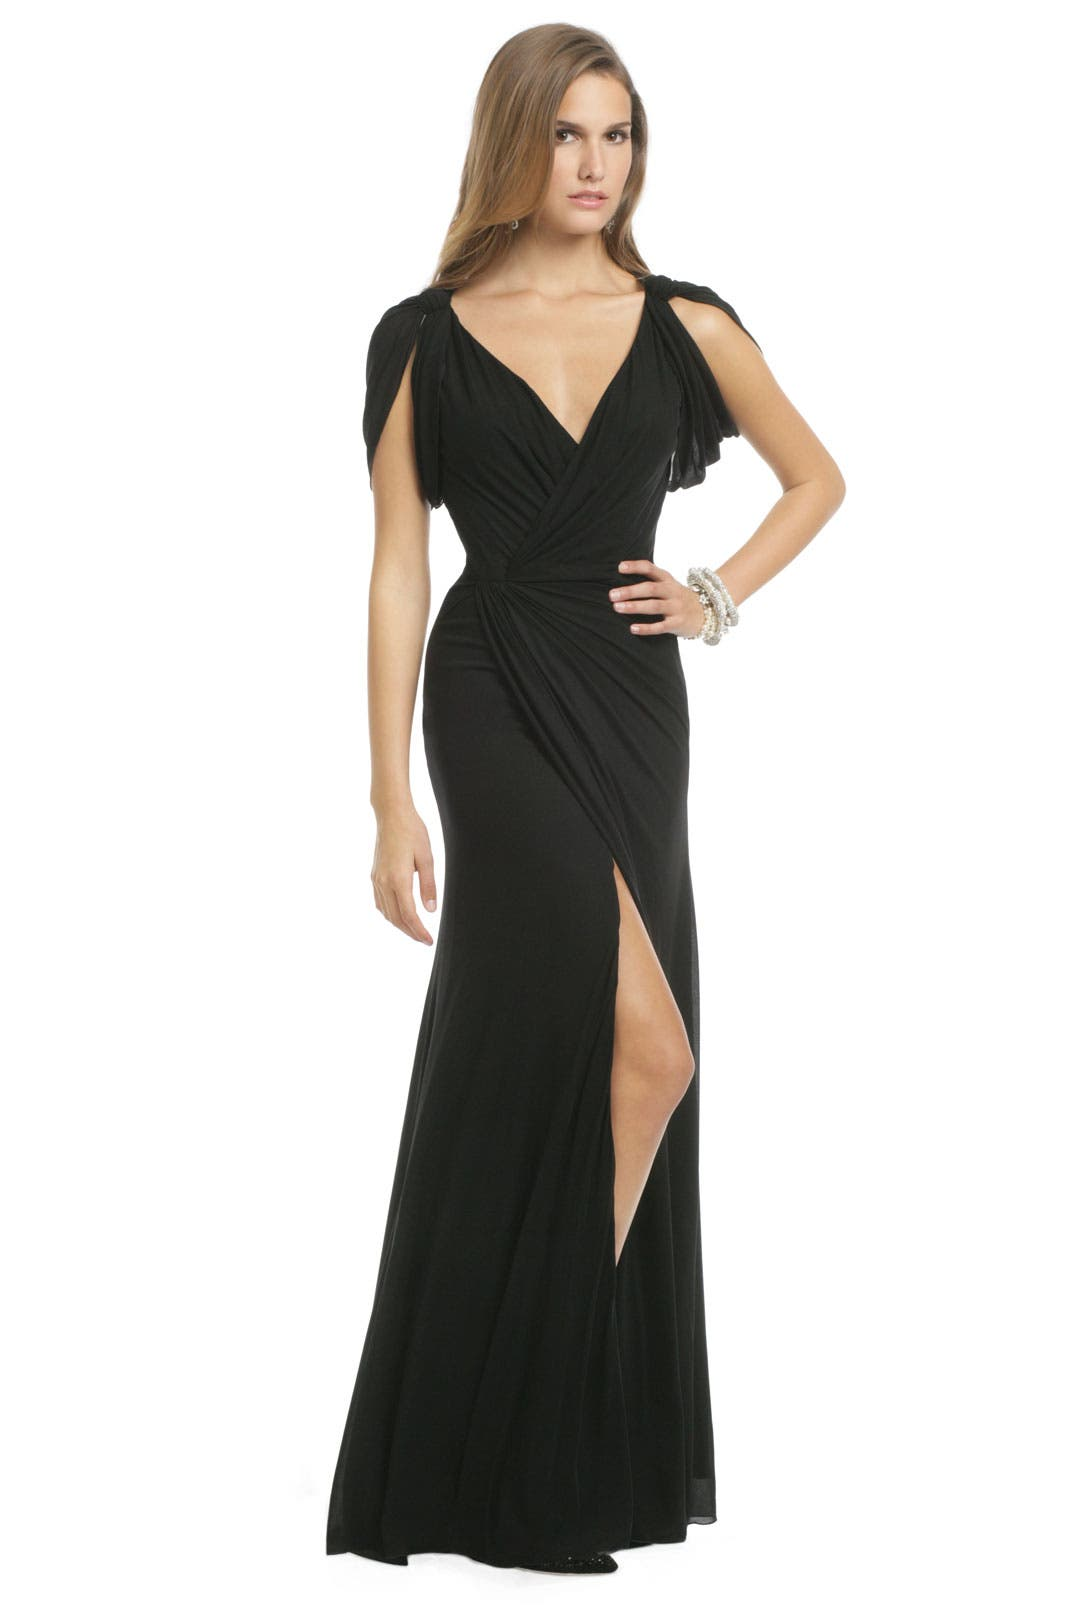 I Dare You Gown by Alberta Ferretti